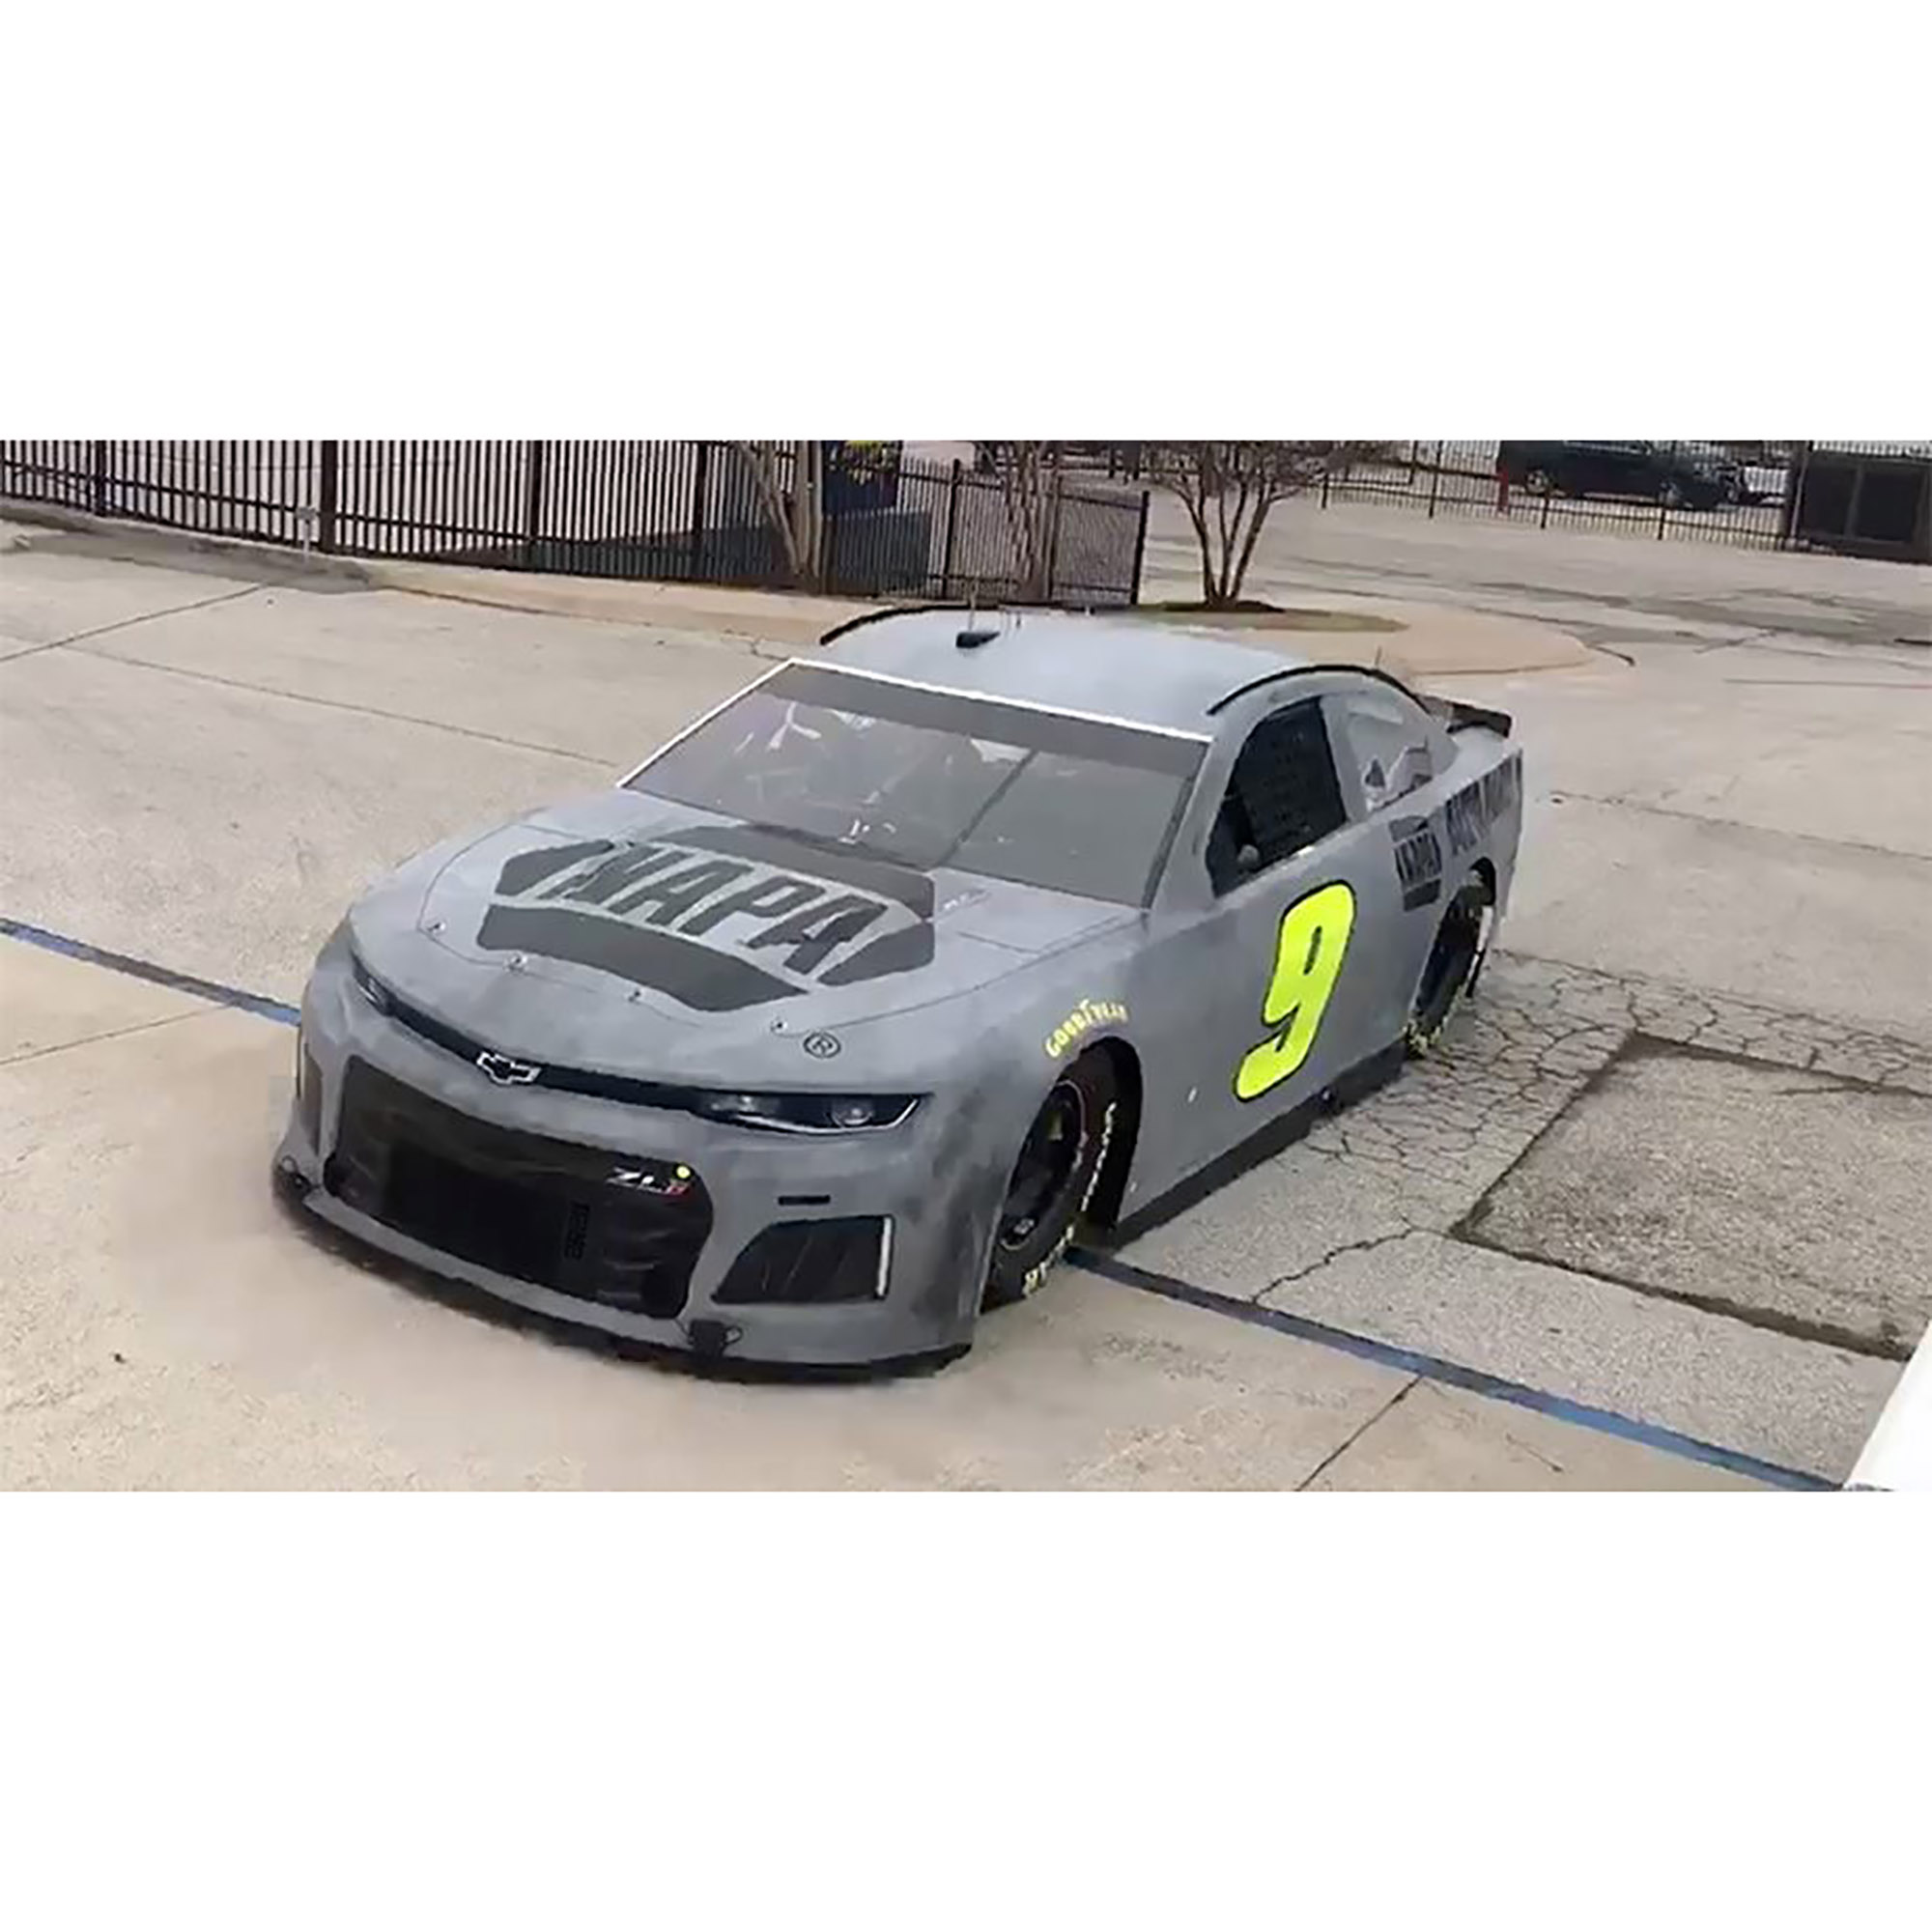 Lionel Racing Chase Elliott #9 NAPA Test Car 2018 Chevrolet Camaro 1:24 Scale HO Die-cast